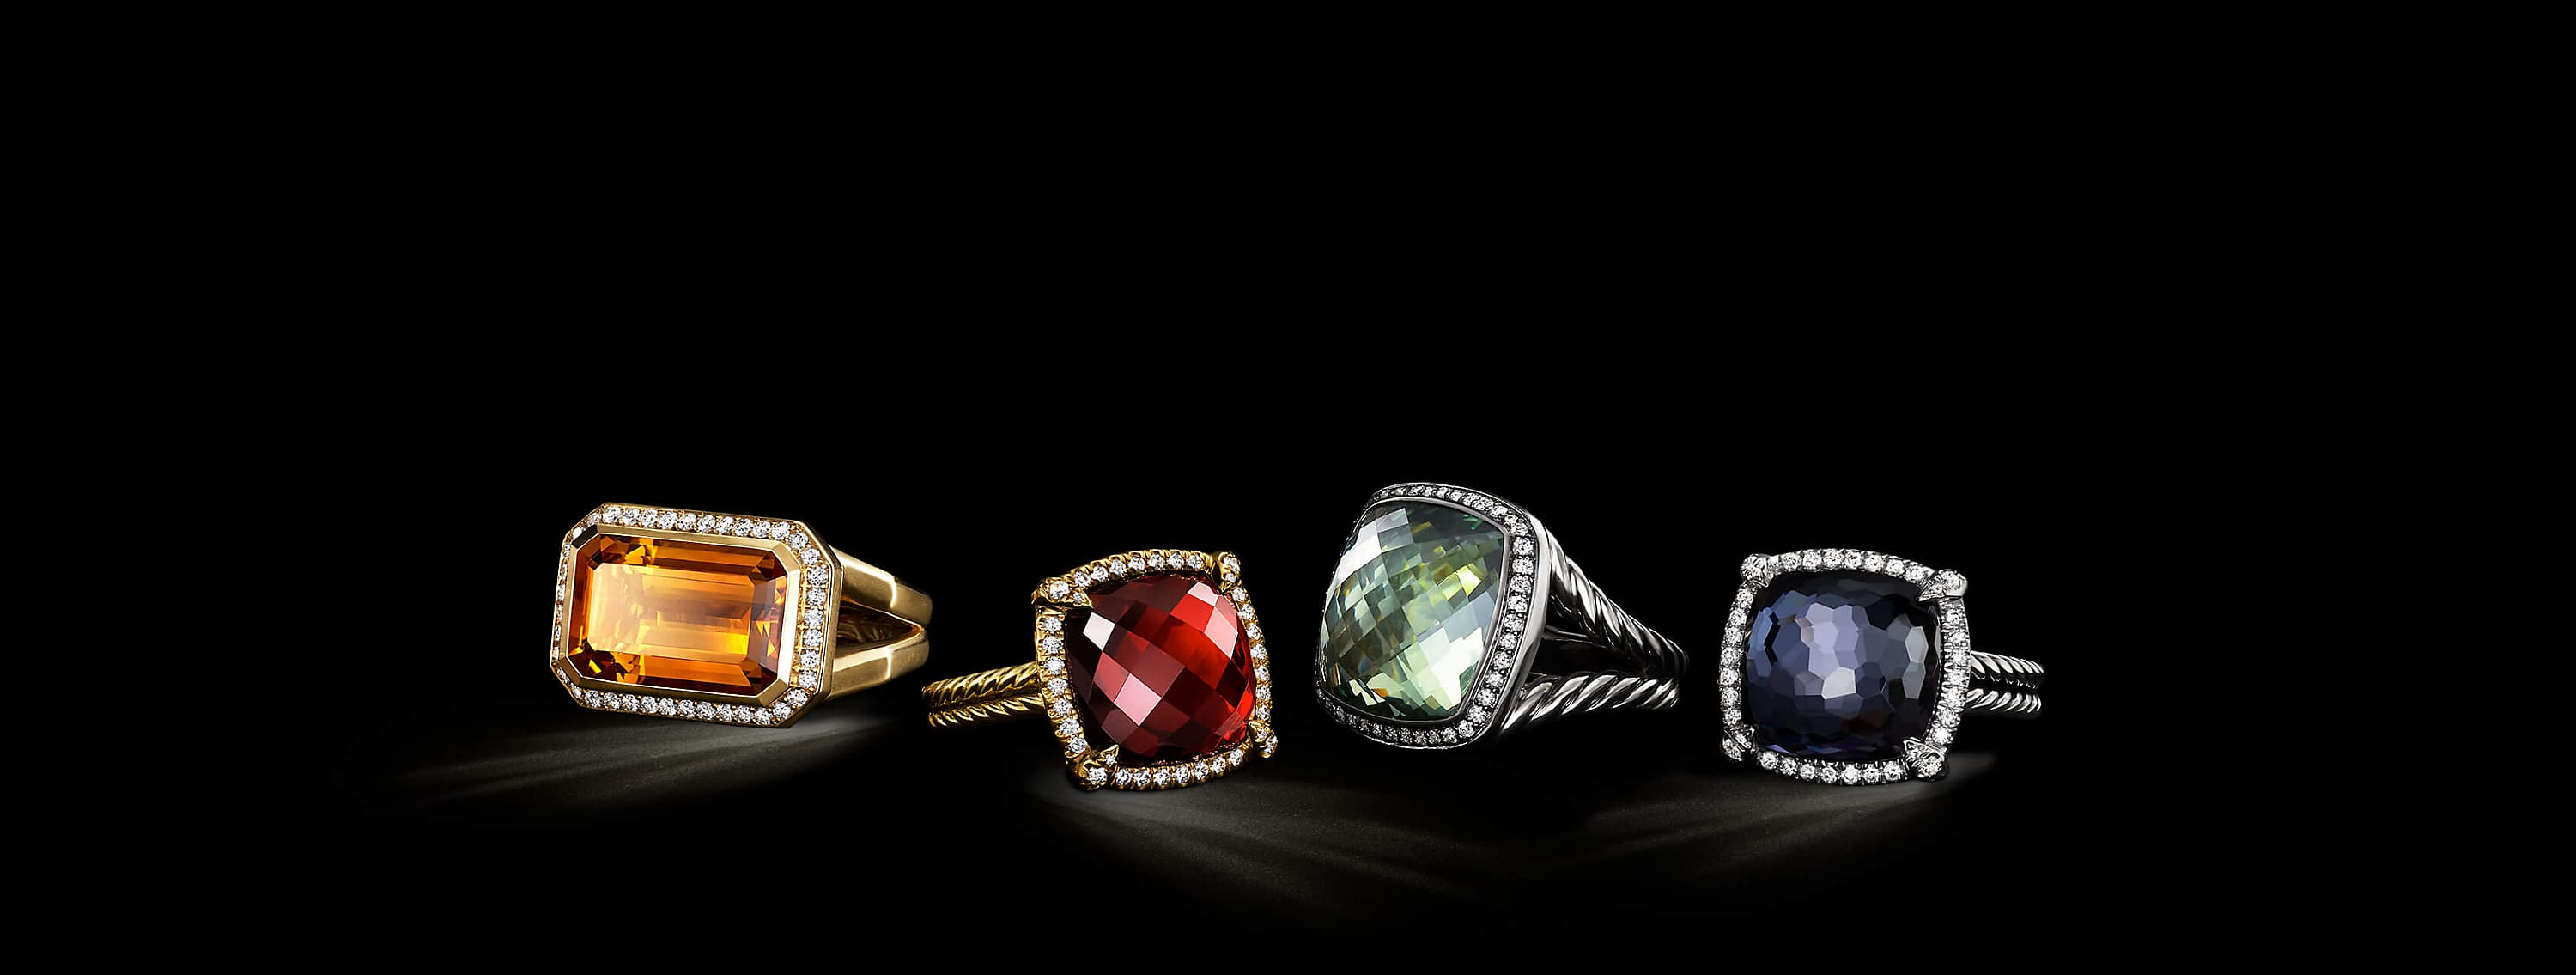 A  color photograph shows four David Yurman women's rings from the Châtelaine, Albion and Novella collections floating in front of a starry night sky. The jewelry is crafted from 18K yellow or rose gold or sterling silver with pavé diamonds, citrine, garnet, prasiolite and black orchid.